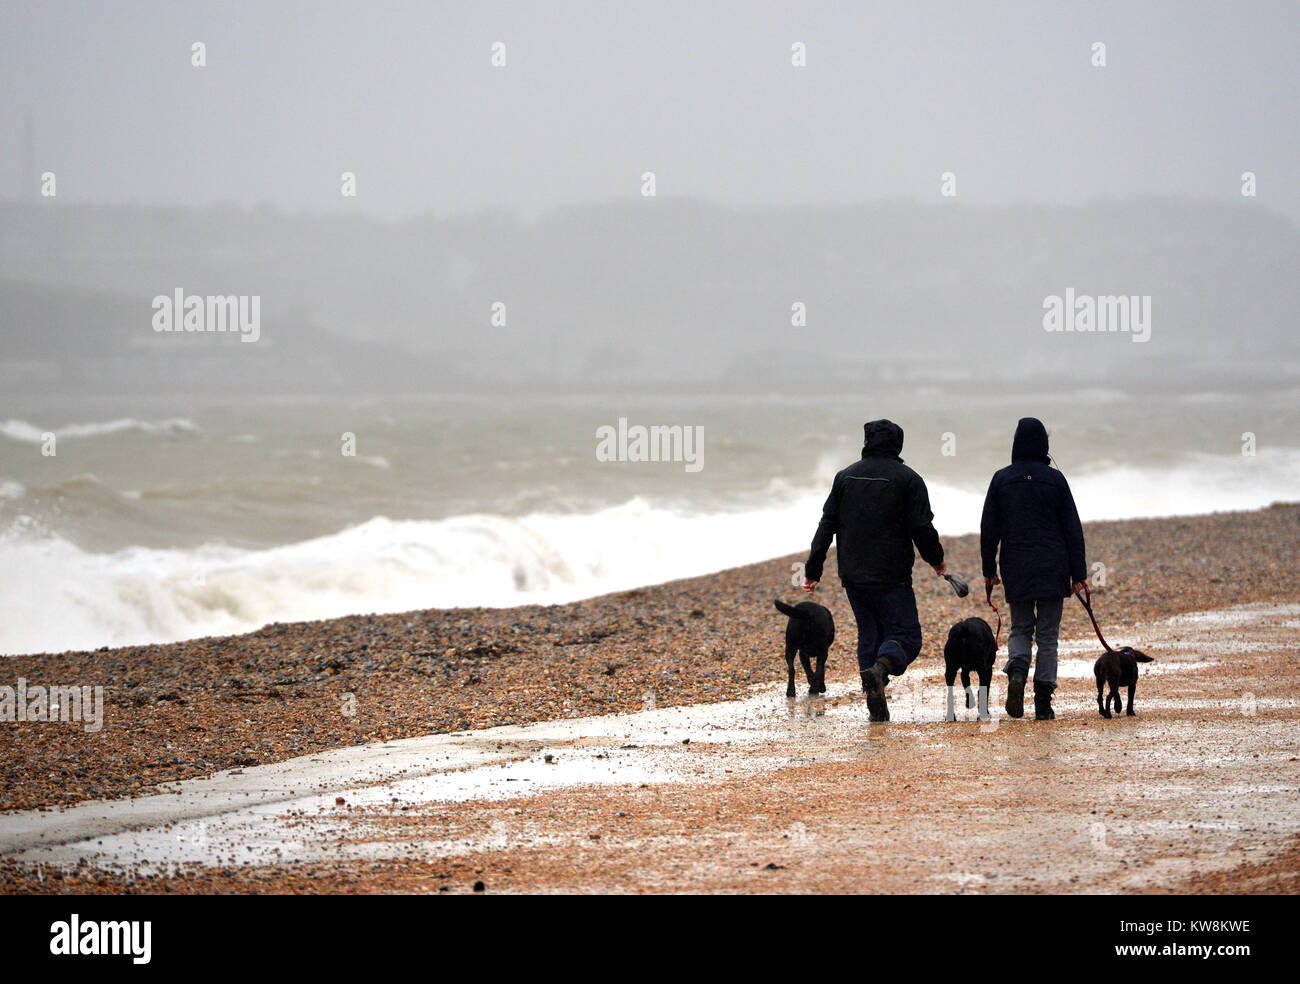 Seaford, East Sussex. 31st December 2017. Joggers and dog walkers brave the weather on Seaford seafront, East Sussex, - Stock Image